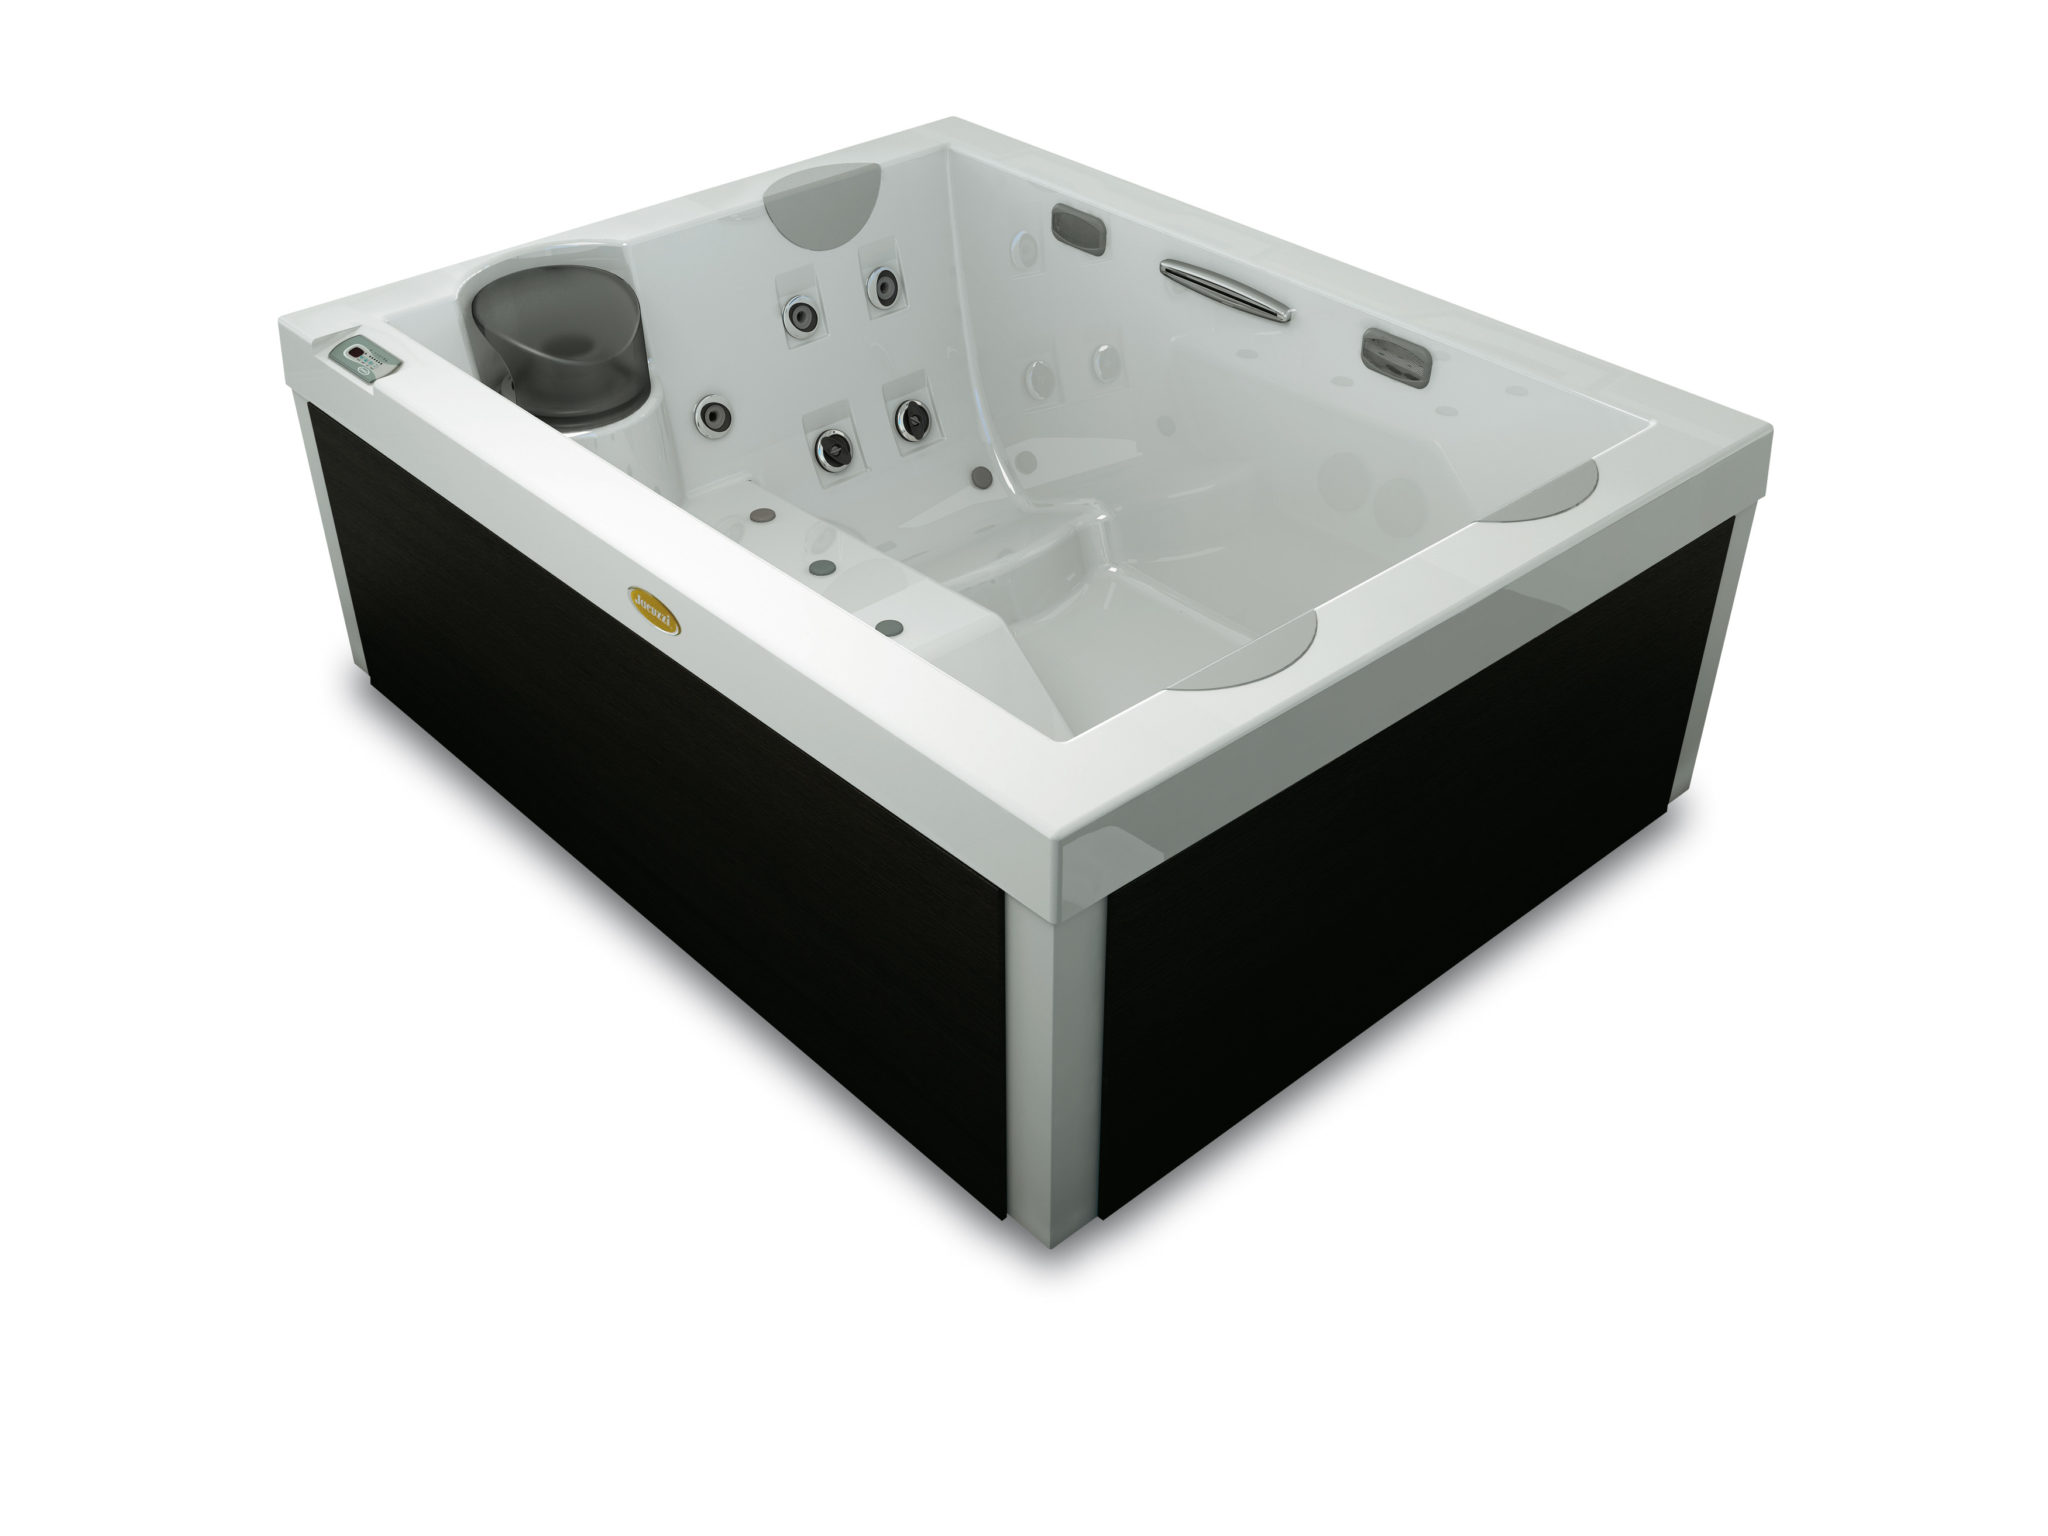 spa 3 places jacuzzi que choisir culturespas. Black Bedroom Furniture Sets. Home Design Ideas